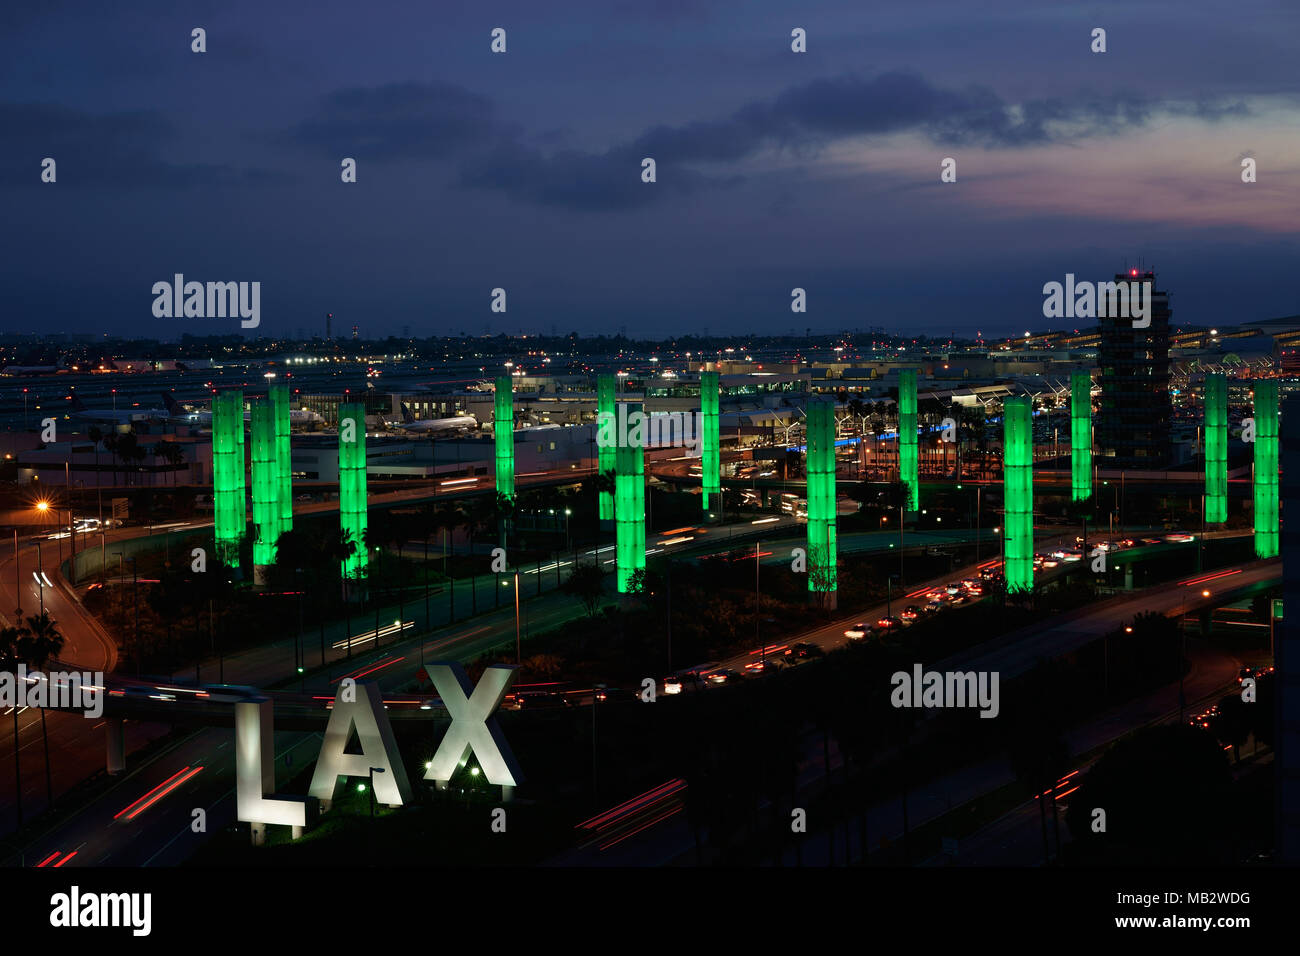 KINETIC LIGHT INSTALLATION AT DUSK (elevated view). LAX Gateway Pylon Project, Los Angeles International Airport, California, USA. - Stock Image